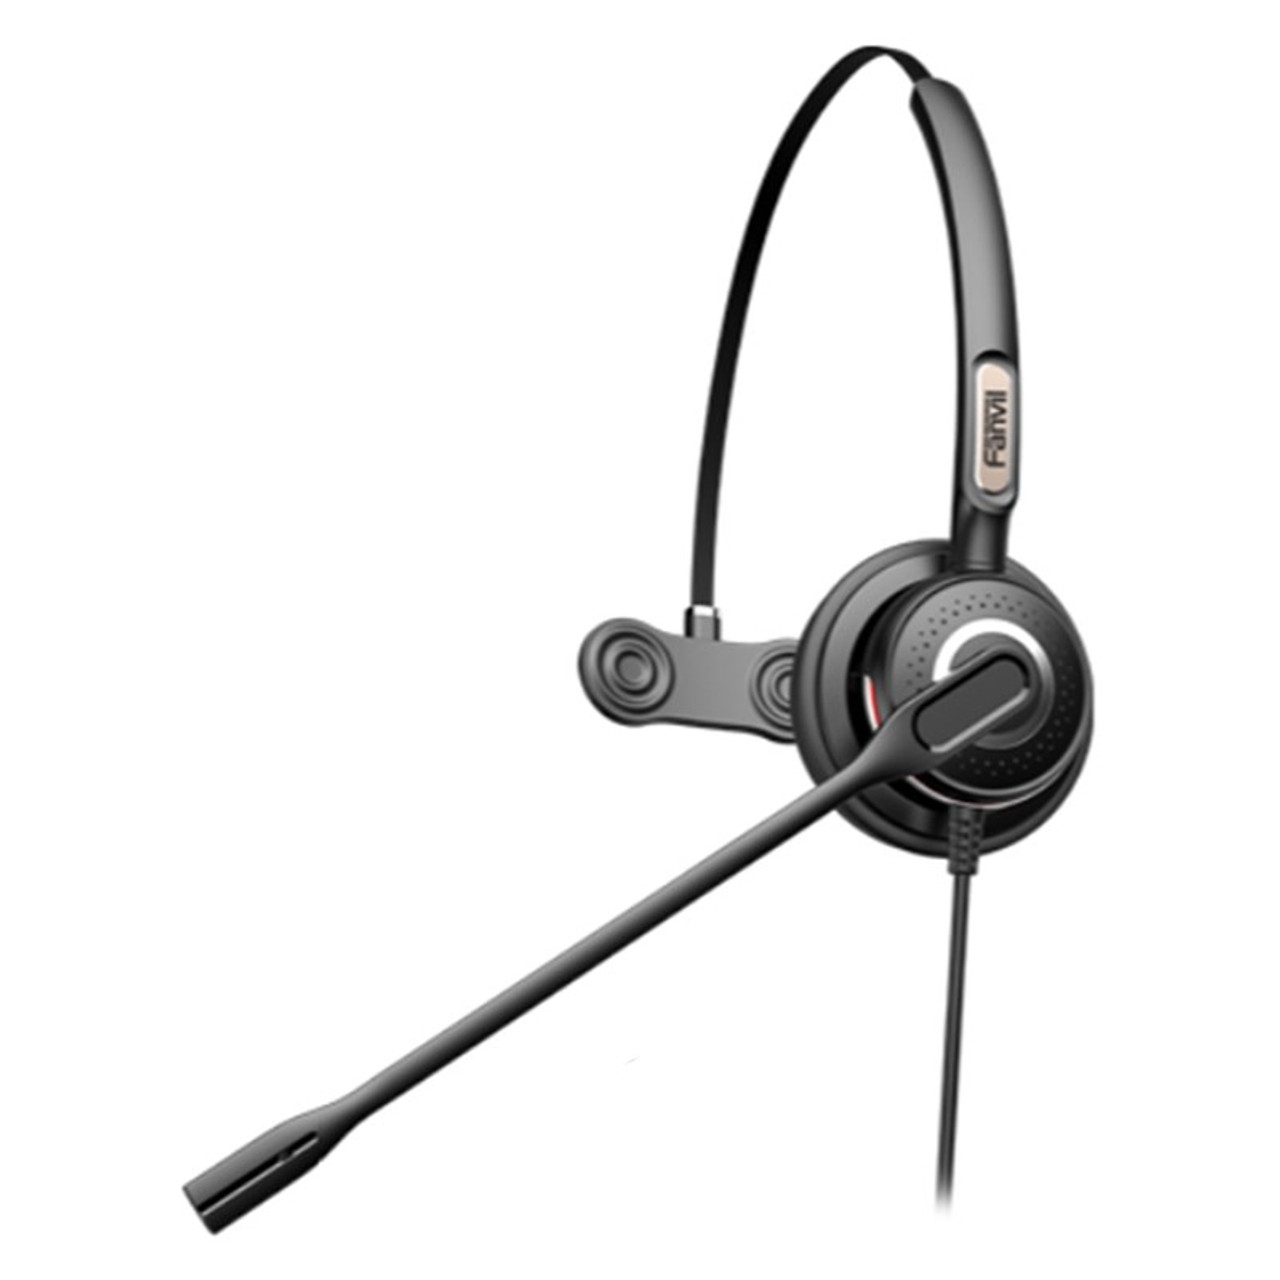 Image for Fanvil HT201 Monaural Wideband Headset CX Computer Superstore